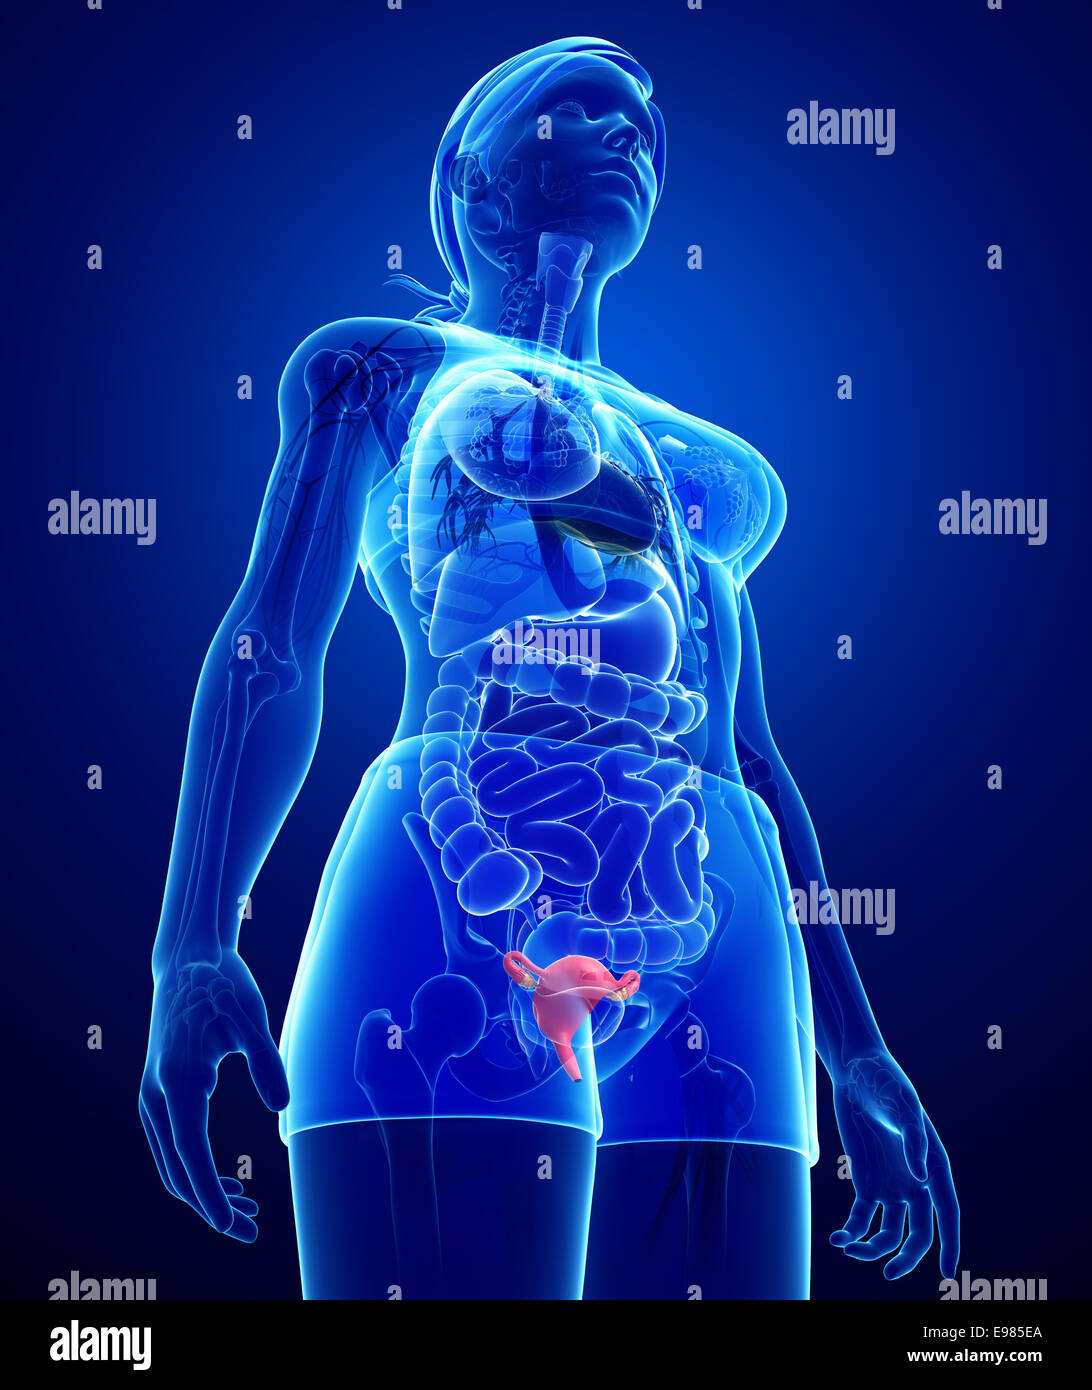 Illustration Of Female Uterus Anatomy Stock Photo 74553314 Alamy